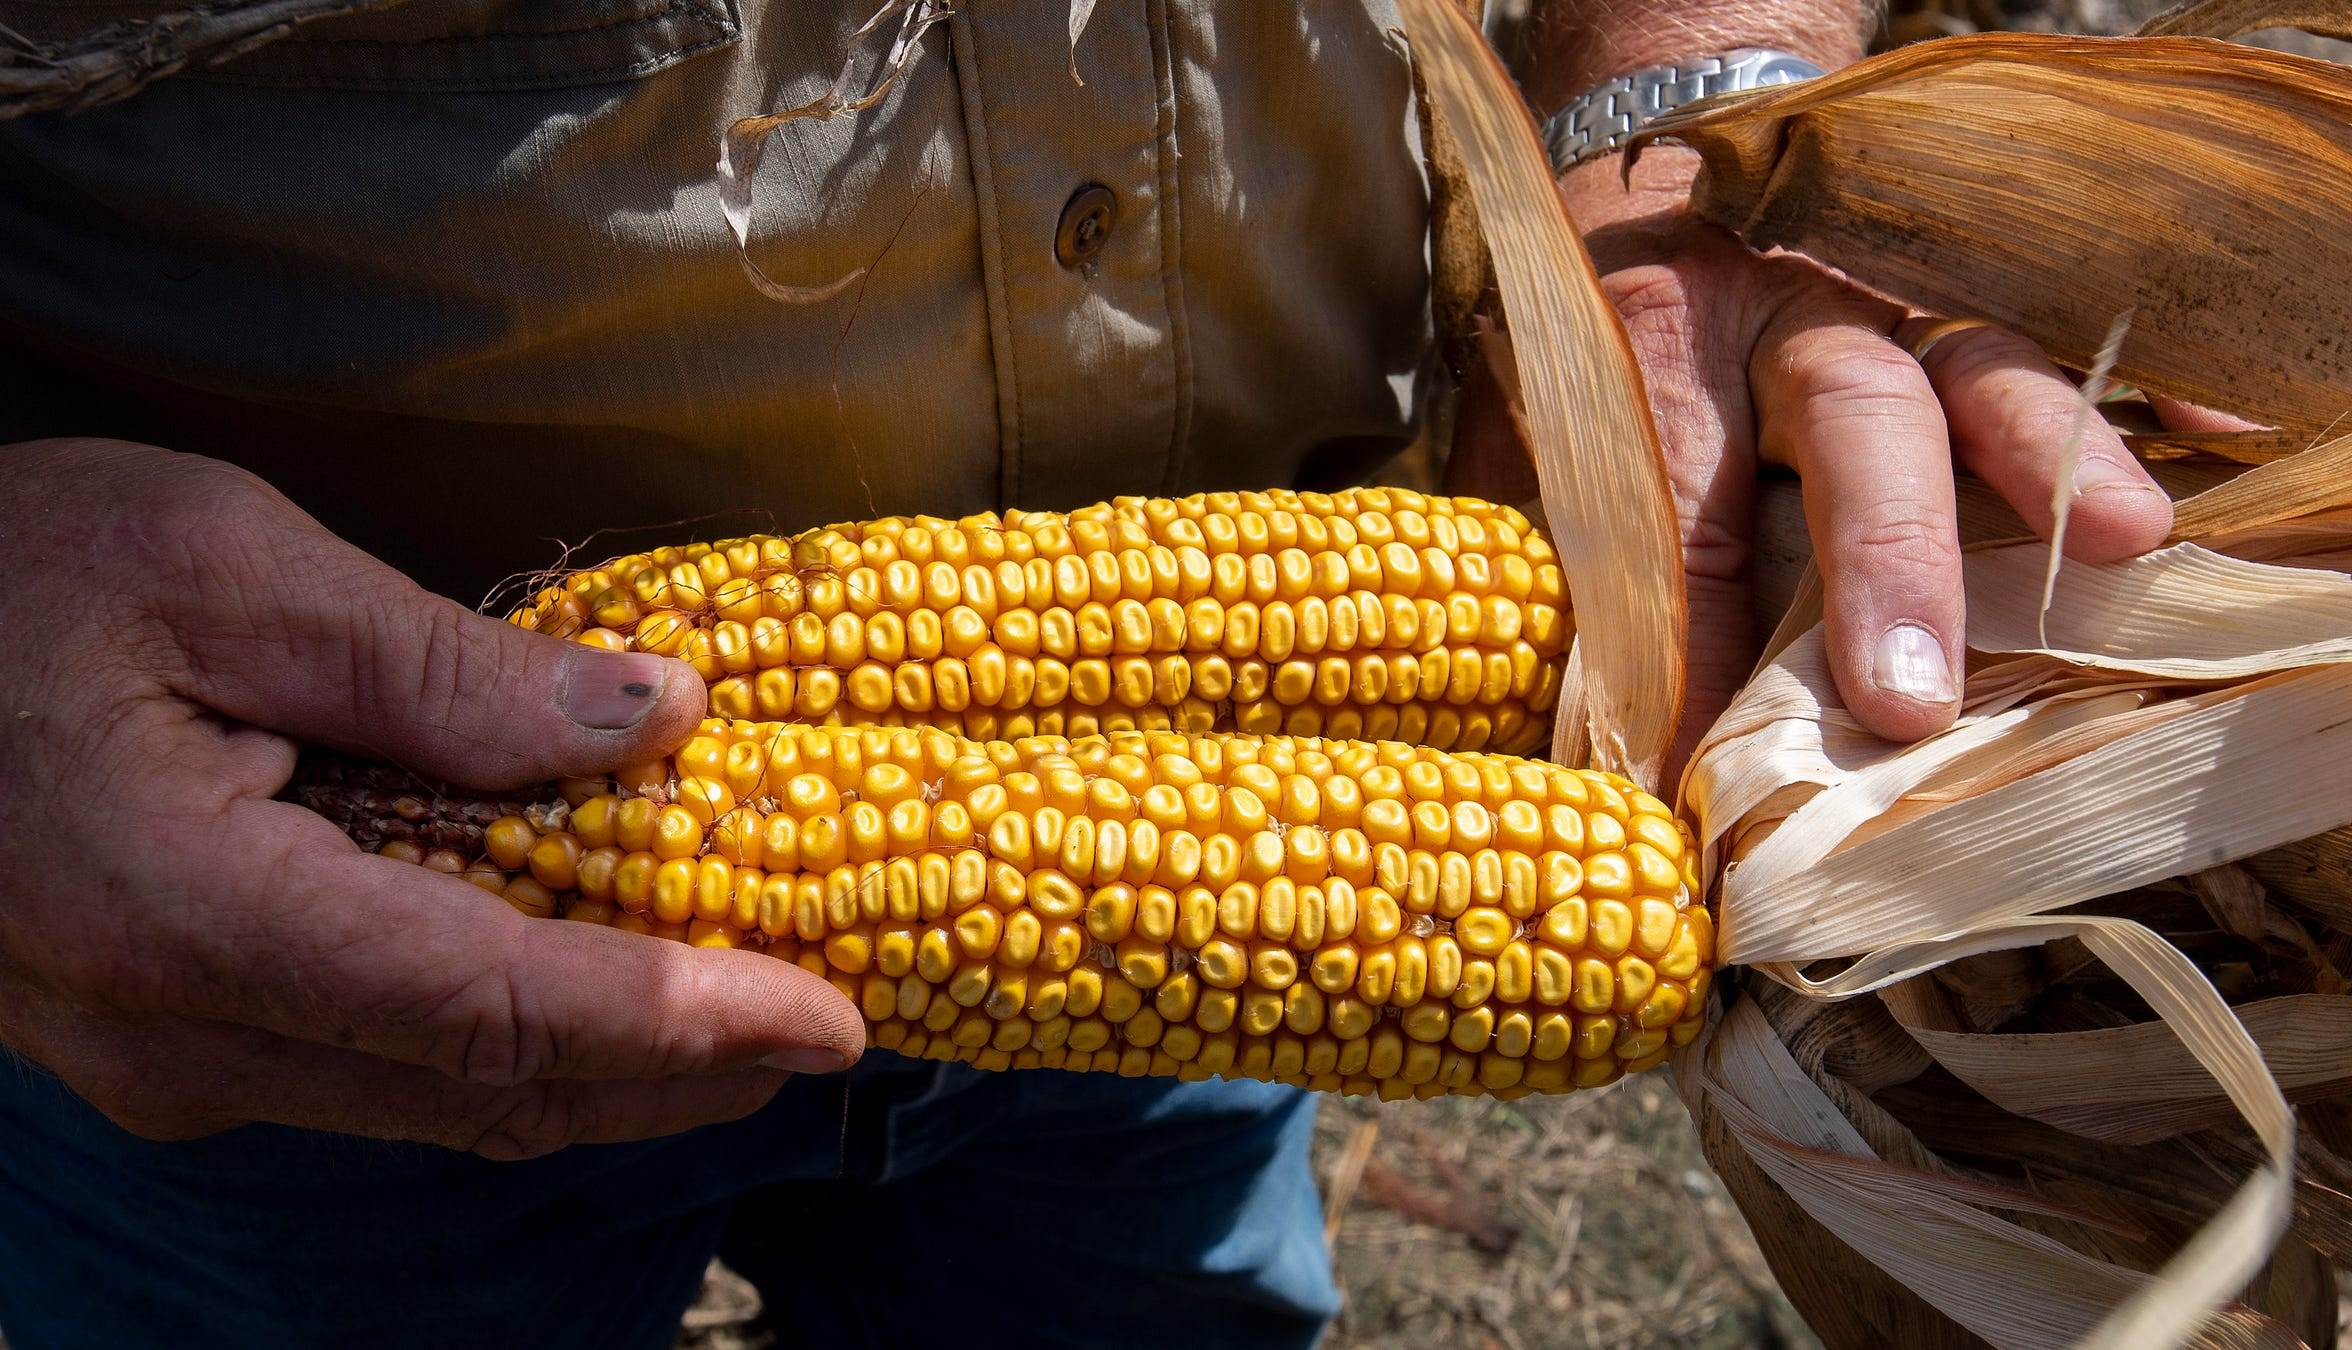 Mike Dee checks on corn that is ready to harvest on the Dee River Ranch near Aliceville, Ala., on Wednesday August 28, 2019. The corn plants turn brown when it is harvest time.